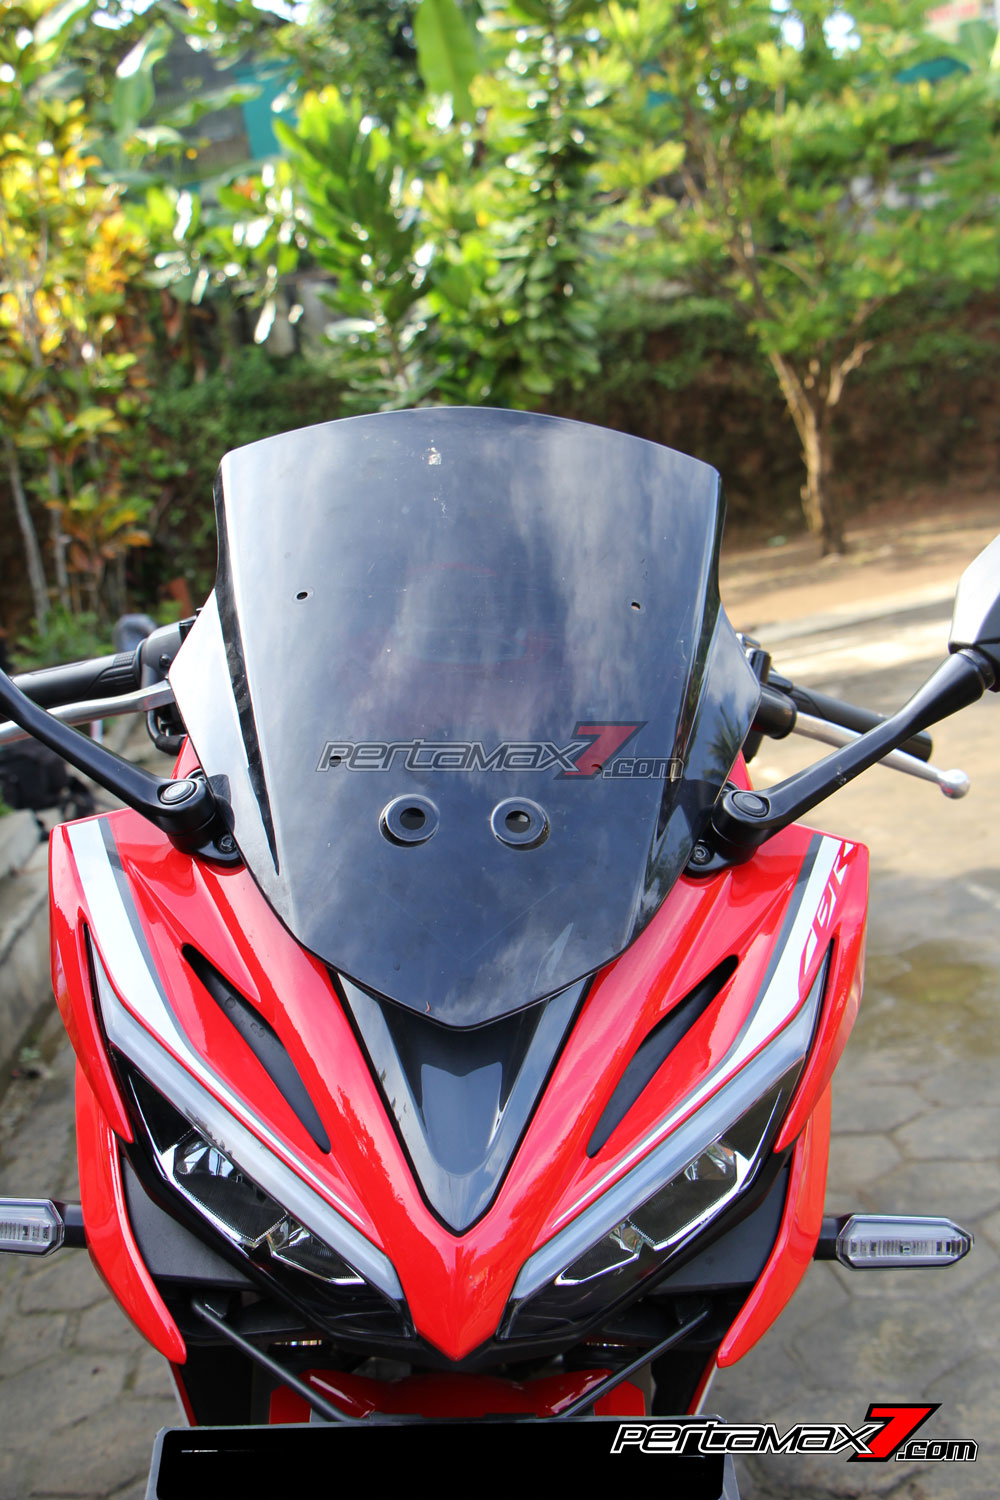 59 Modifikasi Windshield Yamaha Nmax Modifikasi Yamah NMAX